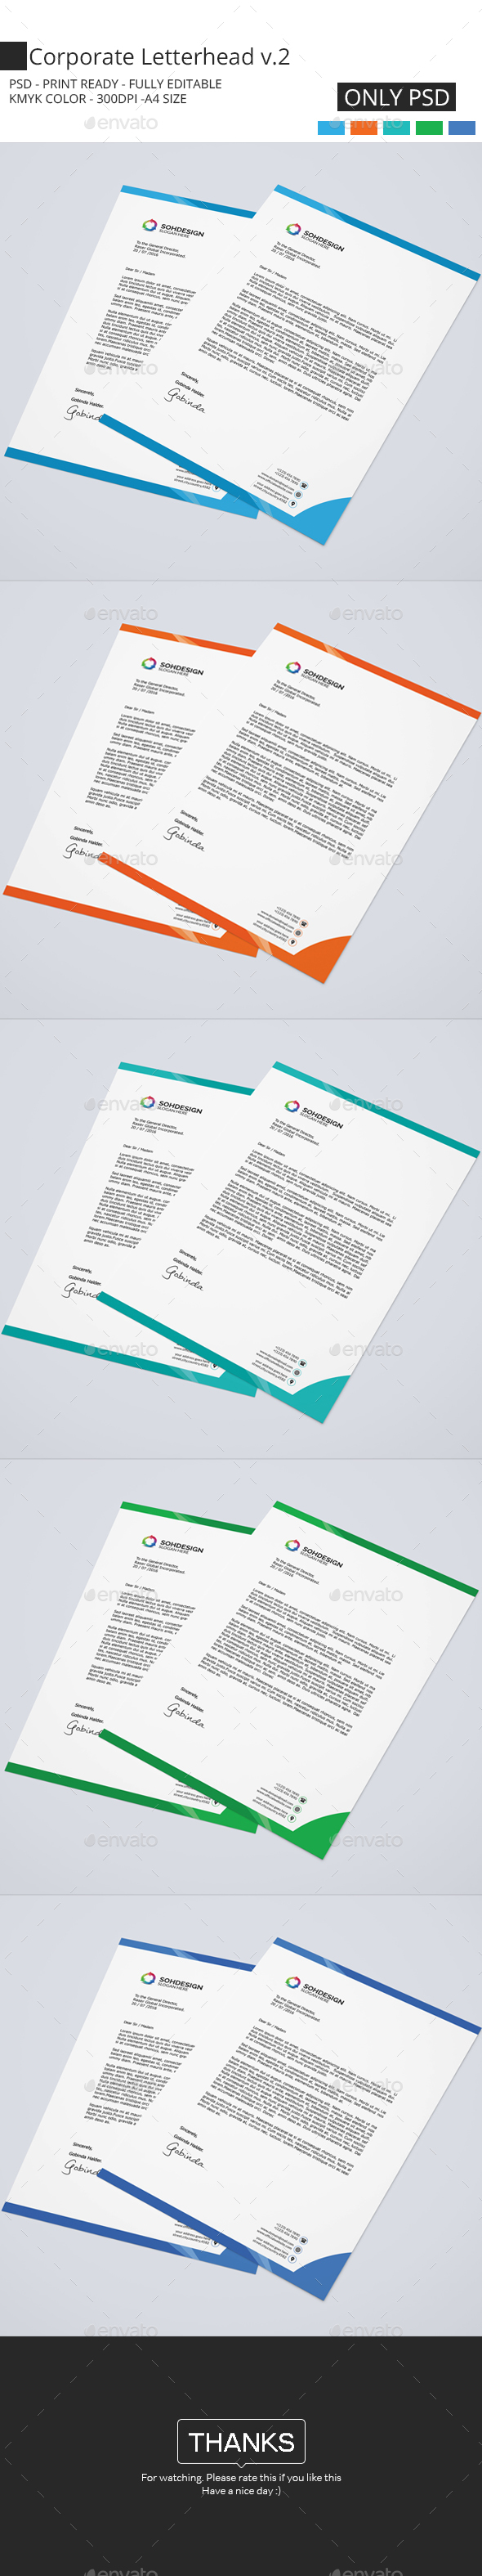 Corporate Letterhead V.2 - Stationery Print Templates